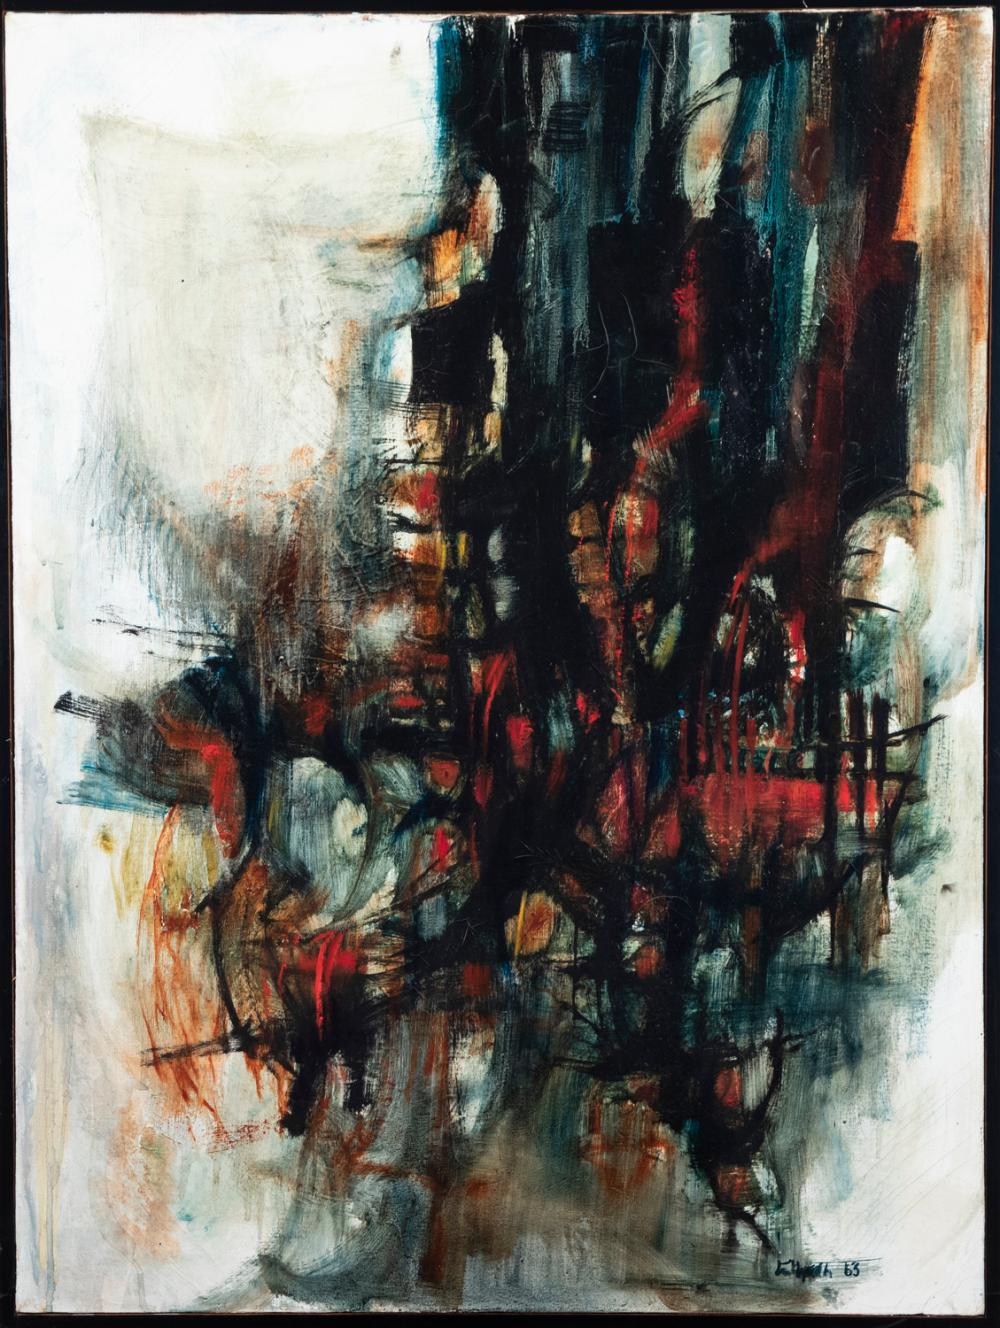 Karen Eltgroth, American, Conflagration,1963, oil on canvas, 40 x 30 inches